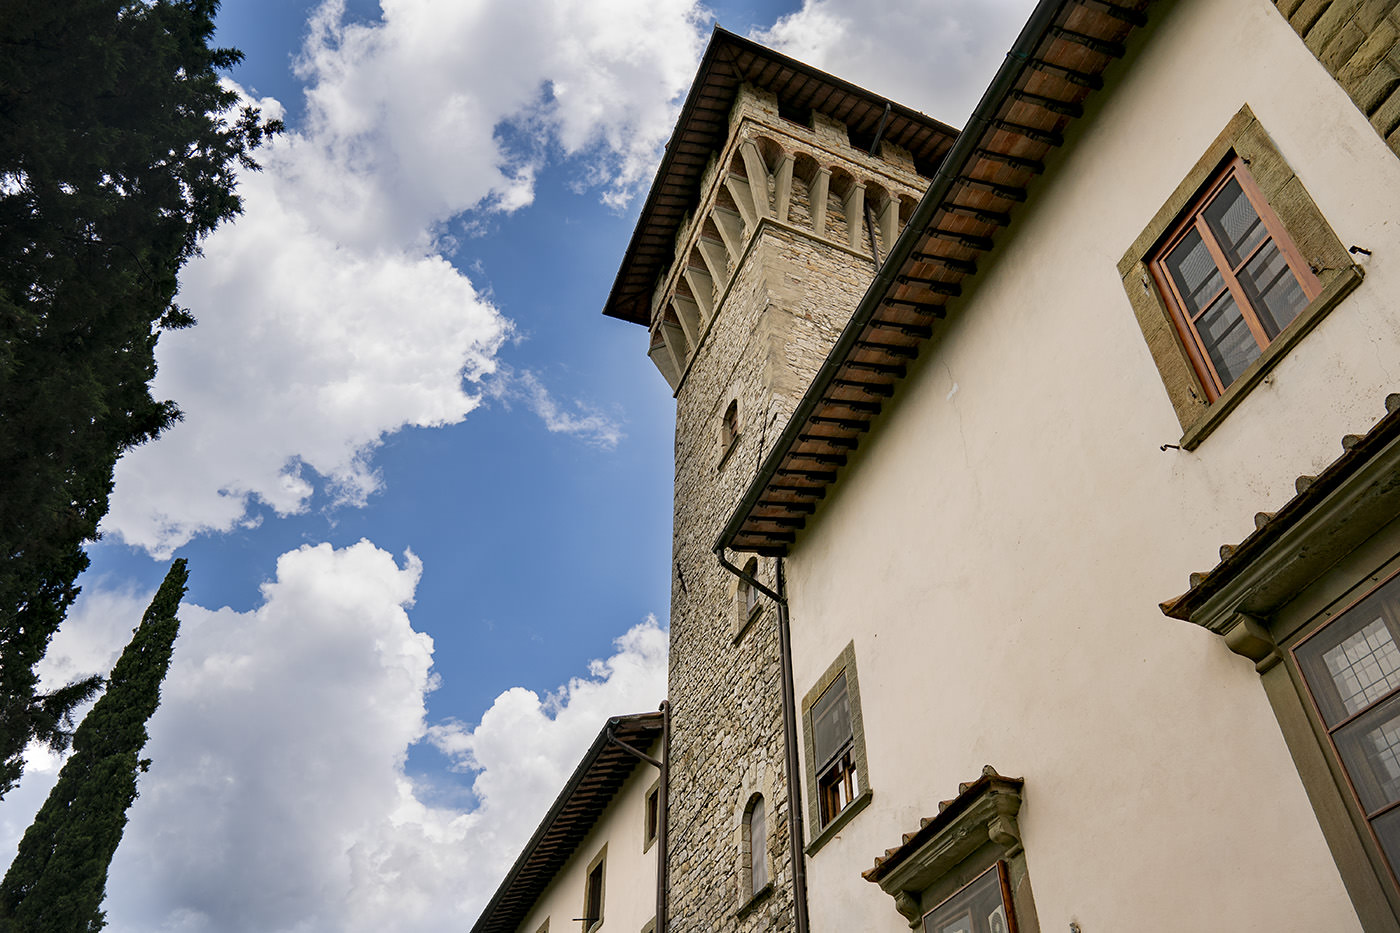 Vicchiomaggio Castle: Wedding Photographer Photo Shoot By Duccio Argentini